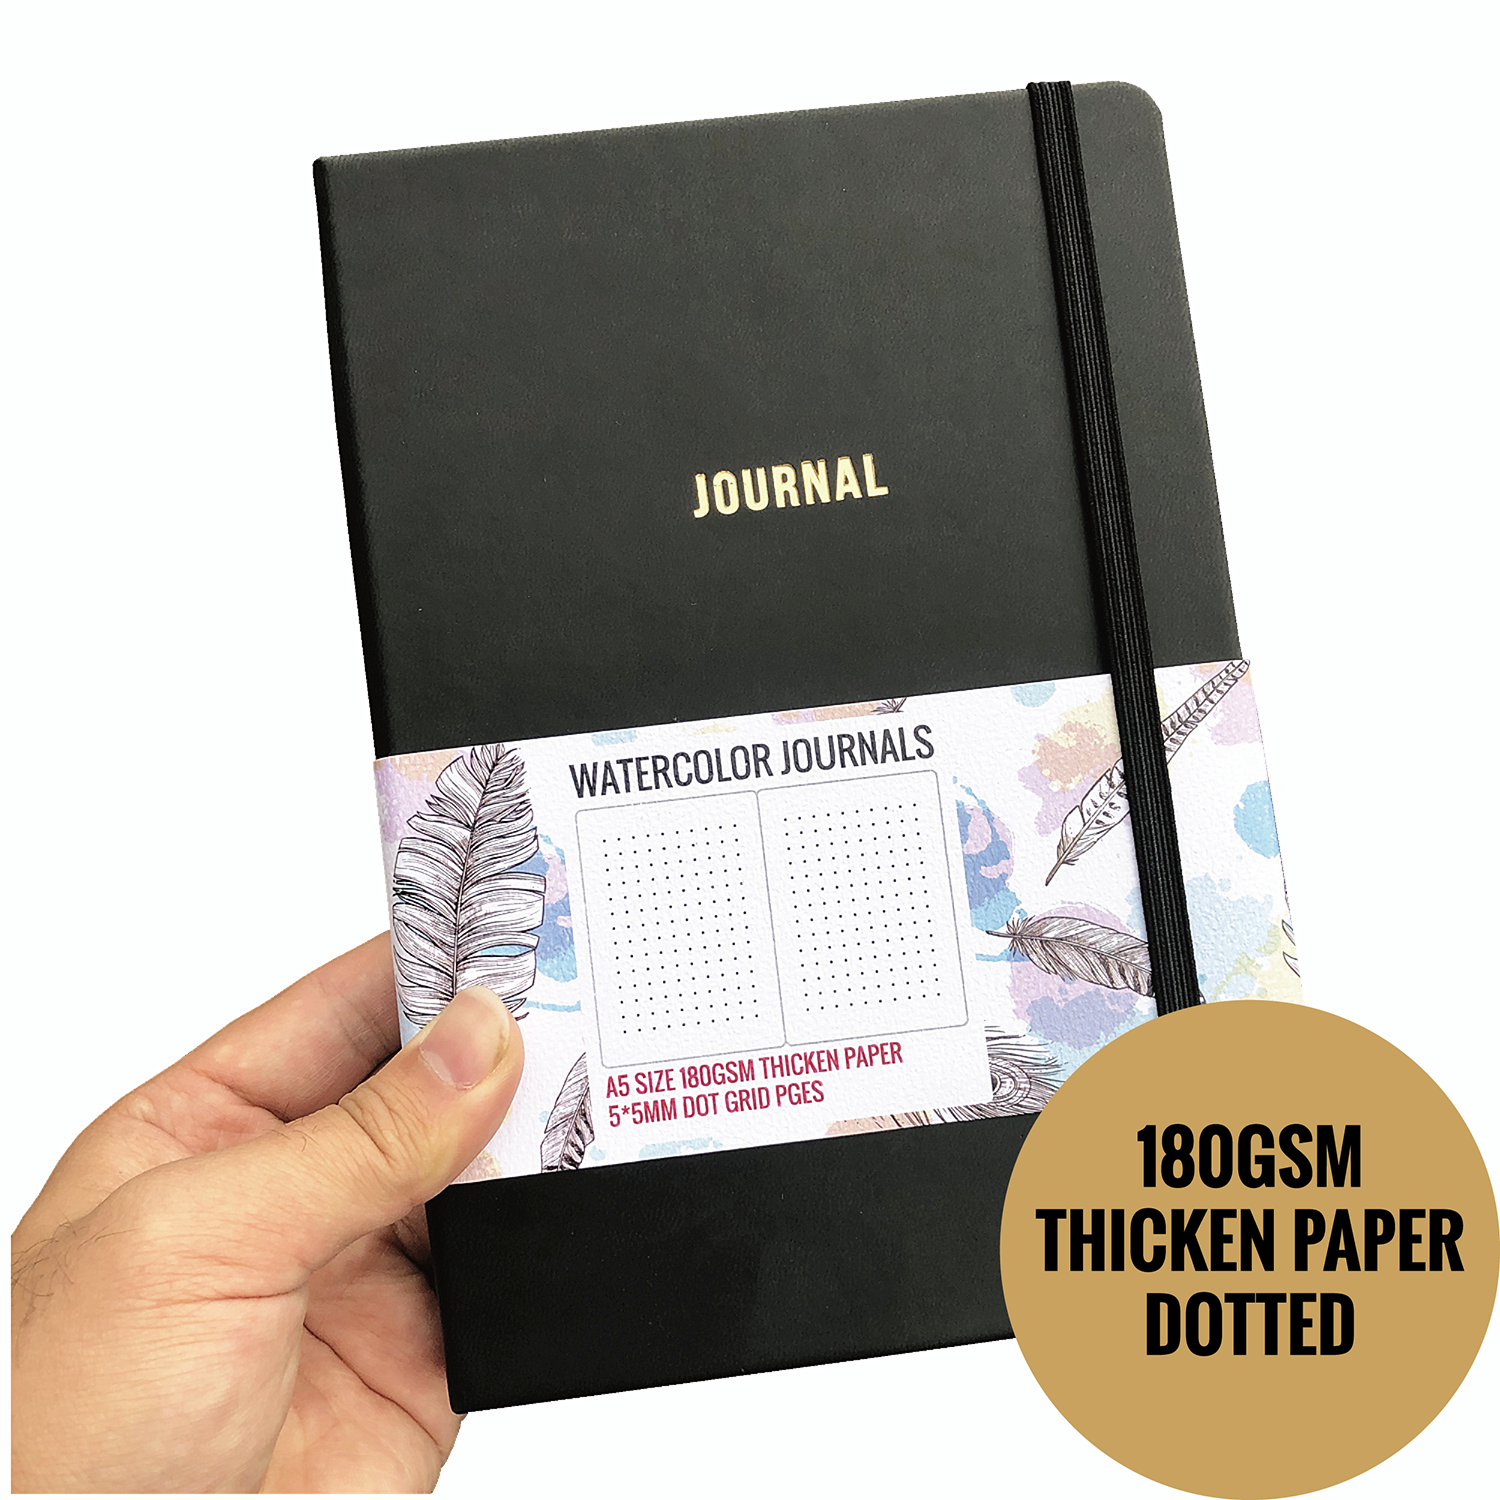 Notebooks Journals Watercolor Thicken Paper 180GSM Dot Gird 160 Pages 5X5mm Dotted